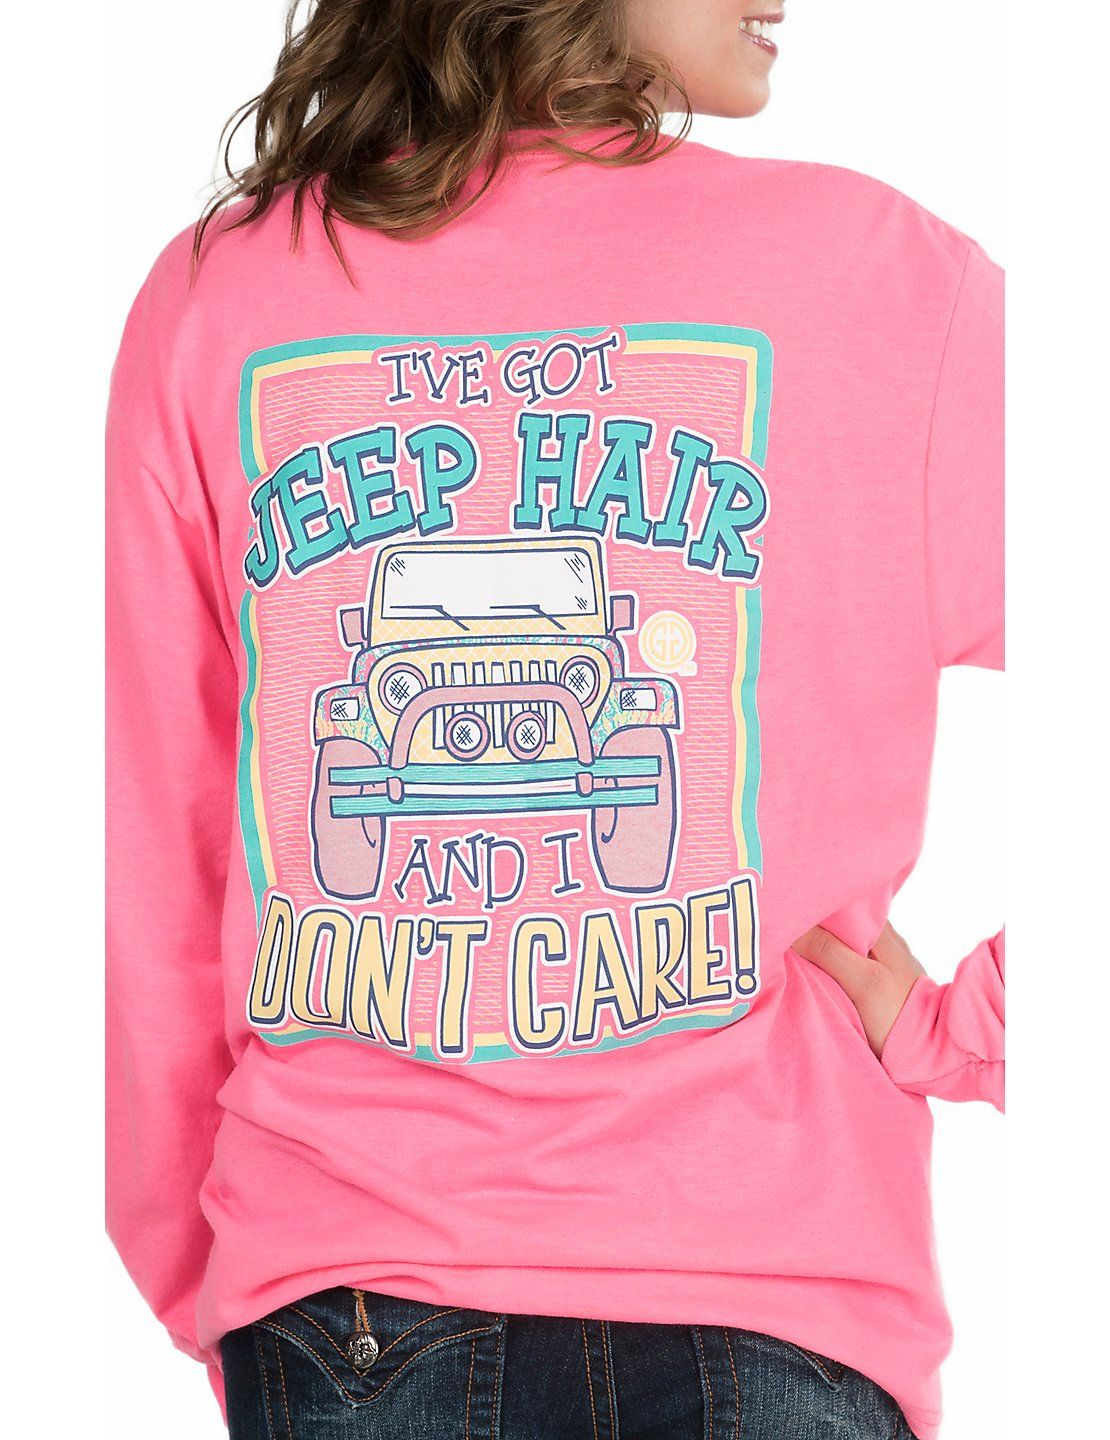 adf4ae7b Girlie Girl Originals Women's Neon Pink with I've Got Jeep Hair and I Don't  Care and Jeep Screen Print Long Sleeve T-Shirt | Cavender's